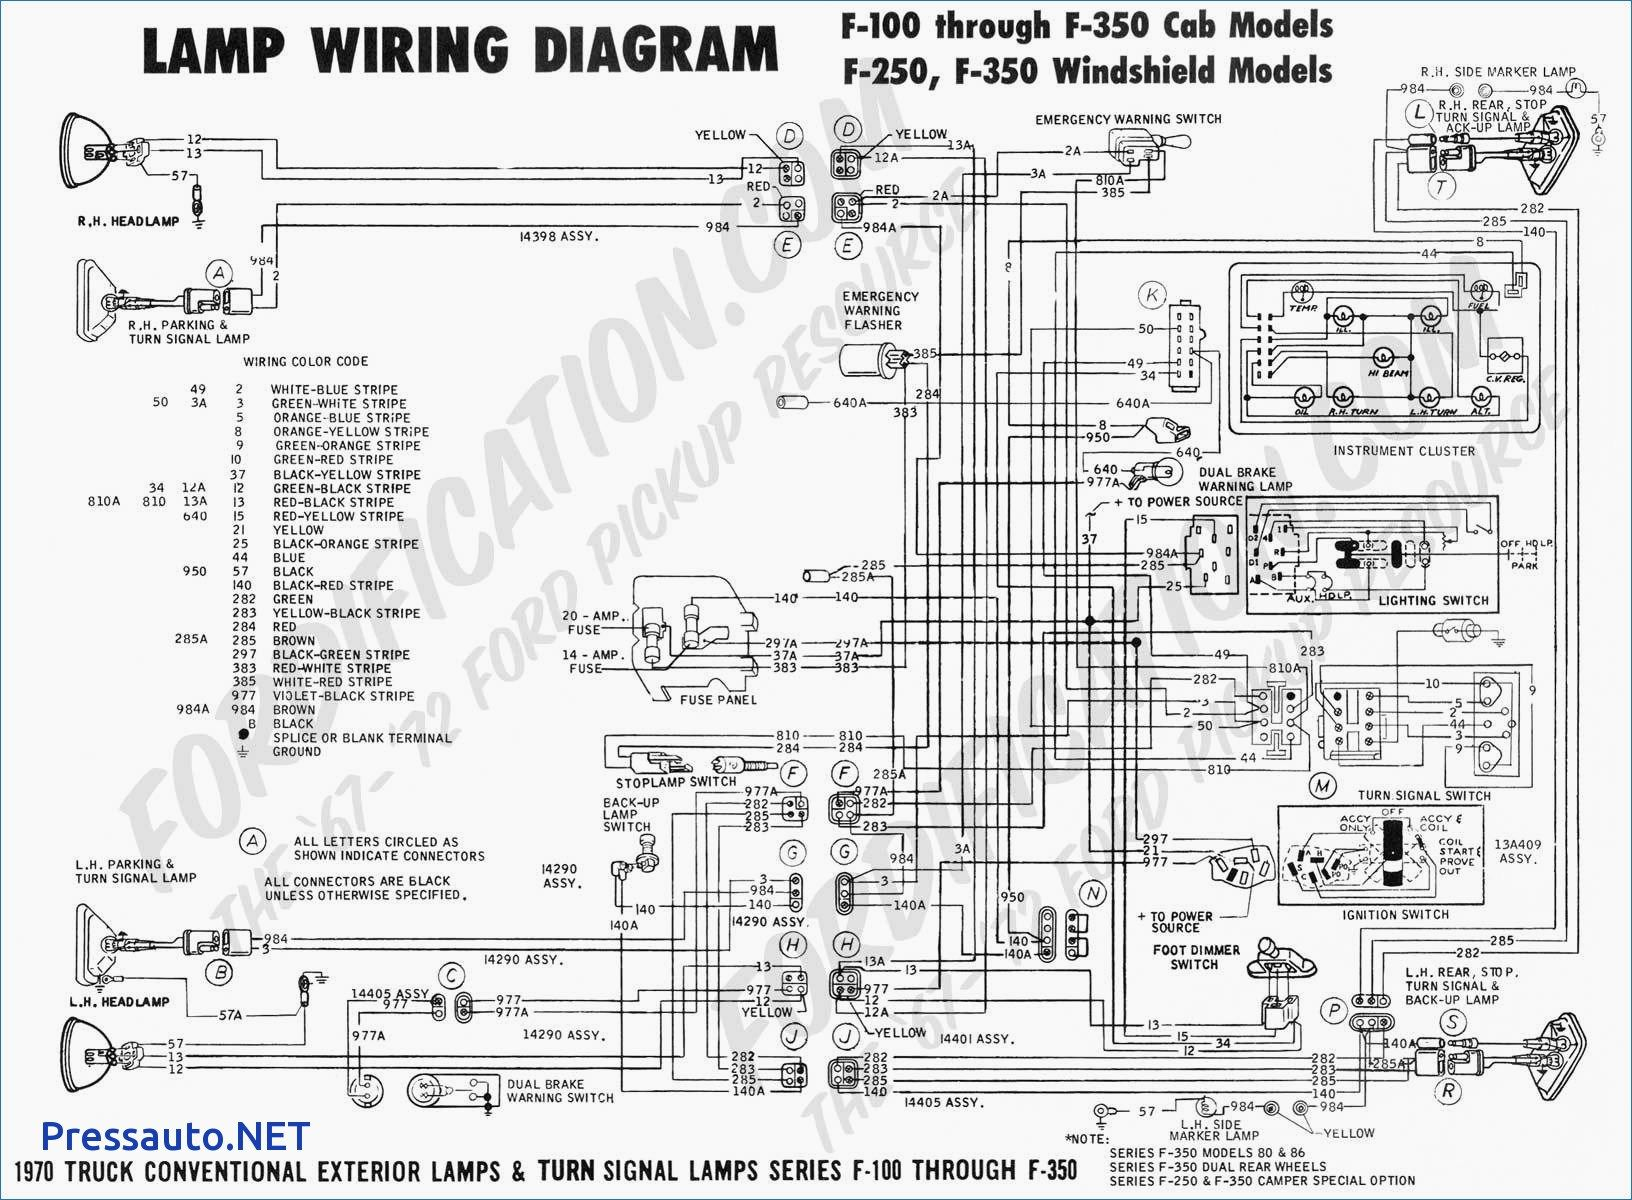 1977 ford f150 wiring diagram wiring diagram 1956 ford truck wiring diagrams 1975 ford truck wiring diagrams #9